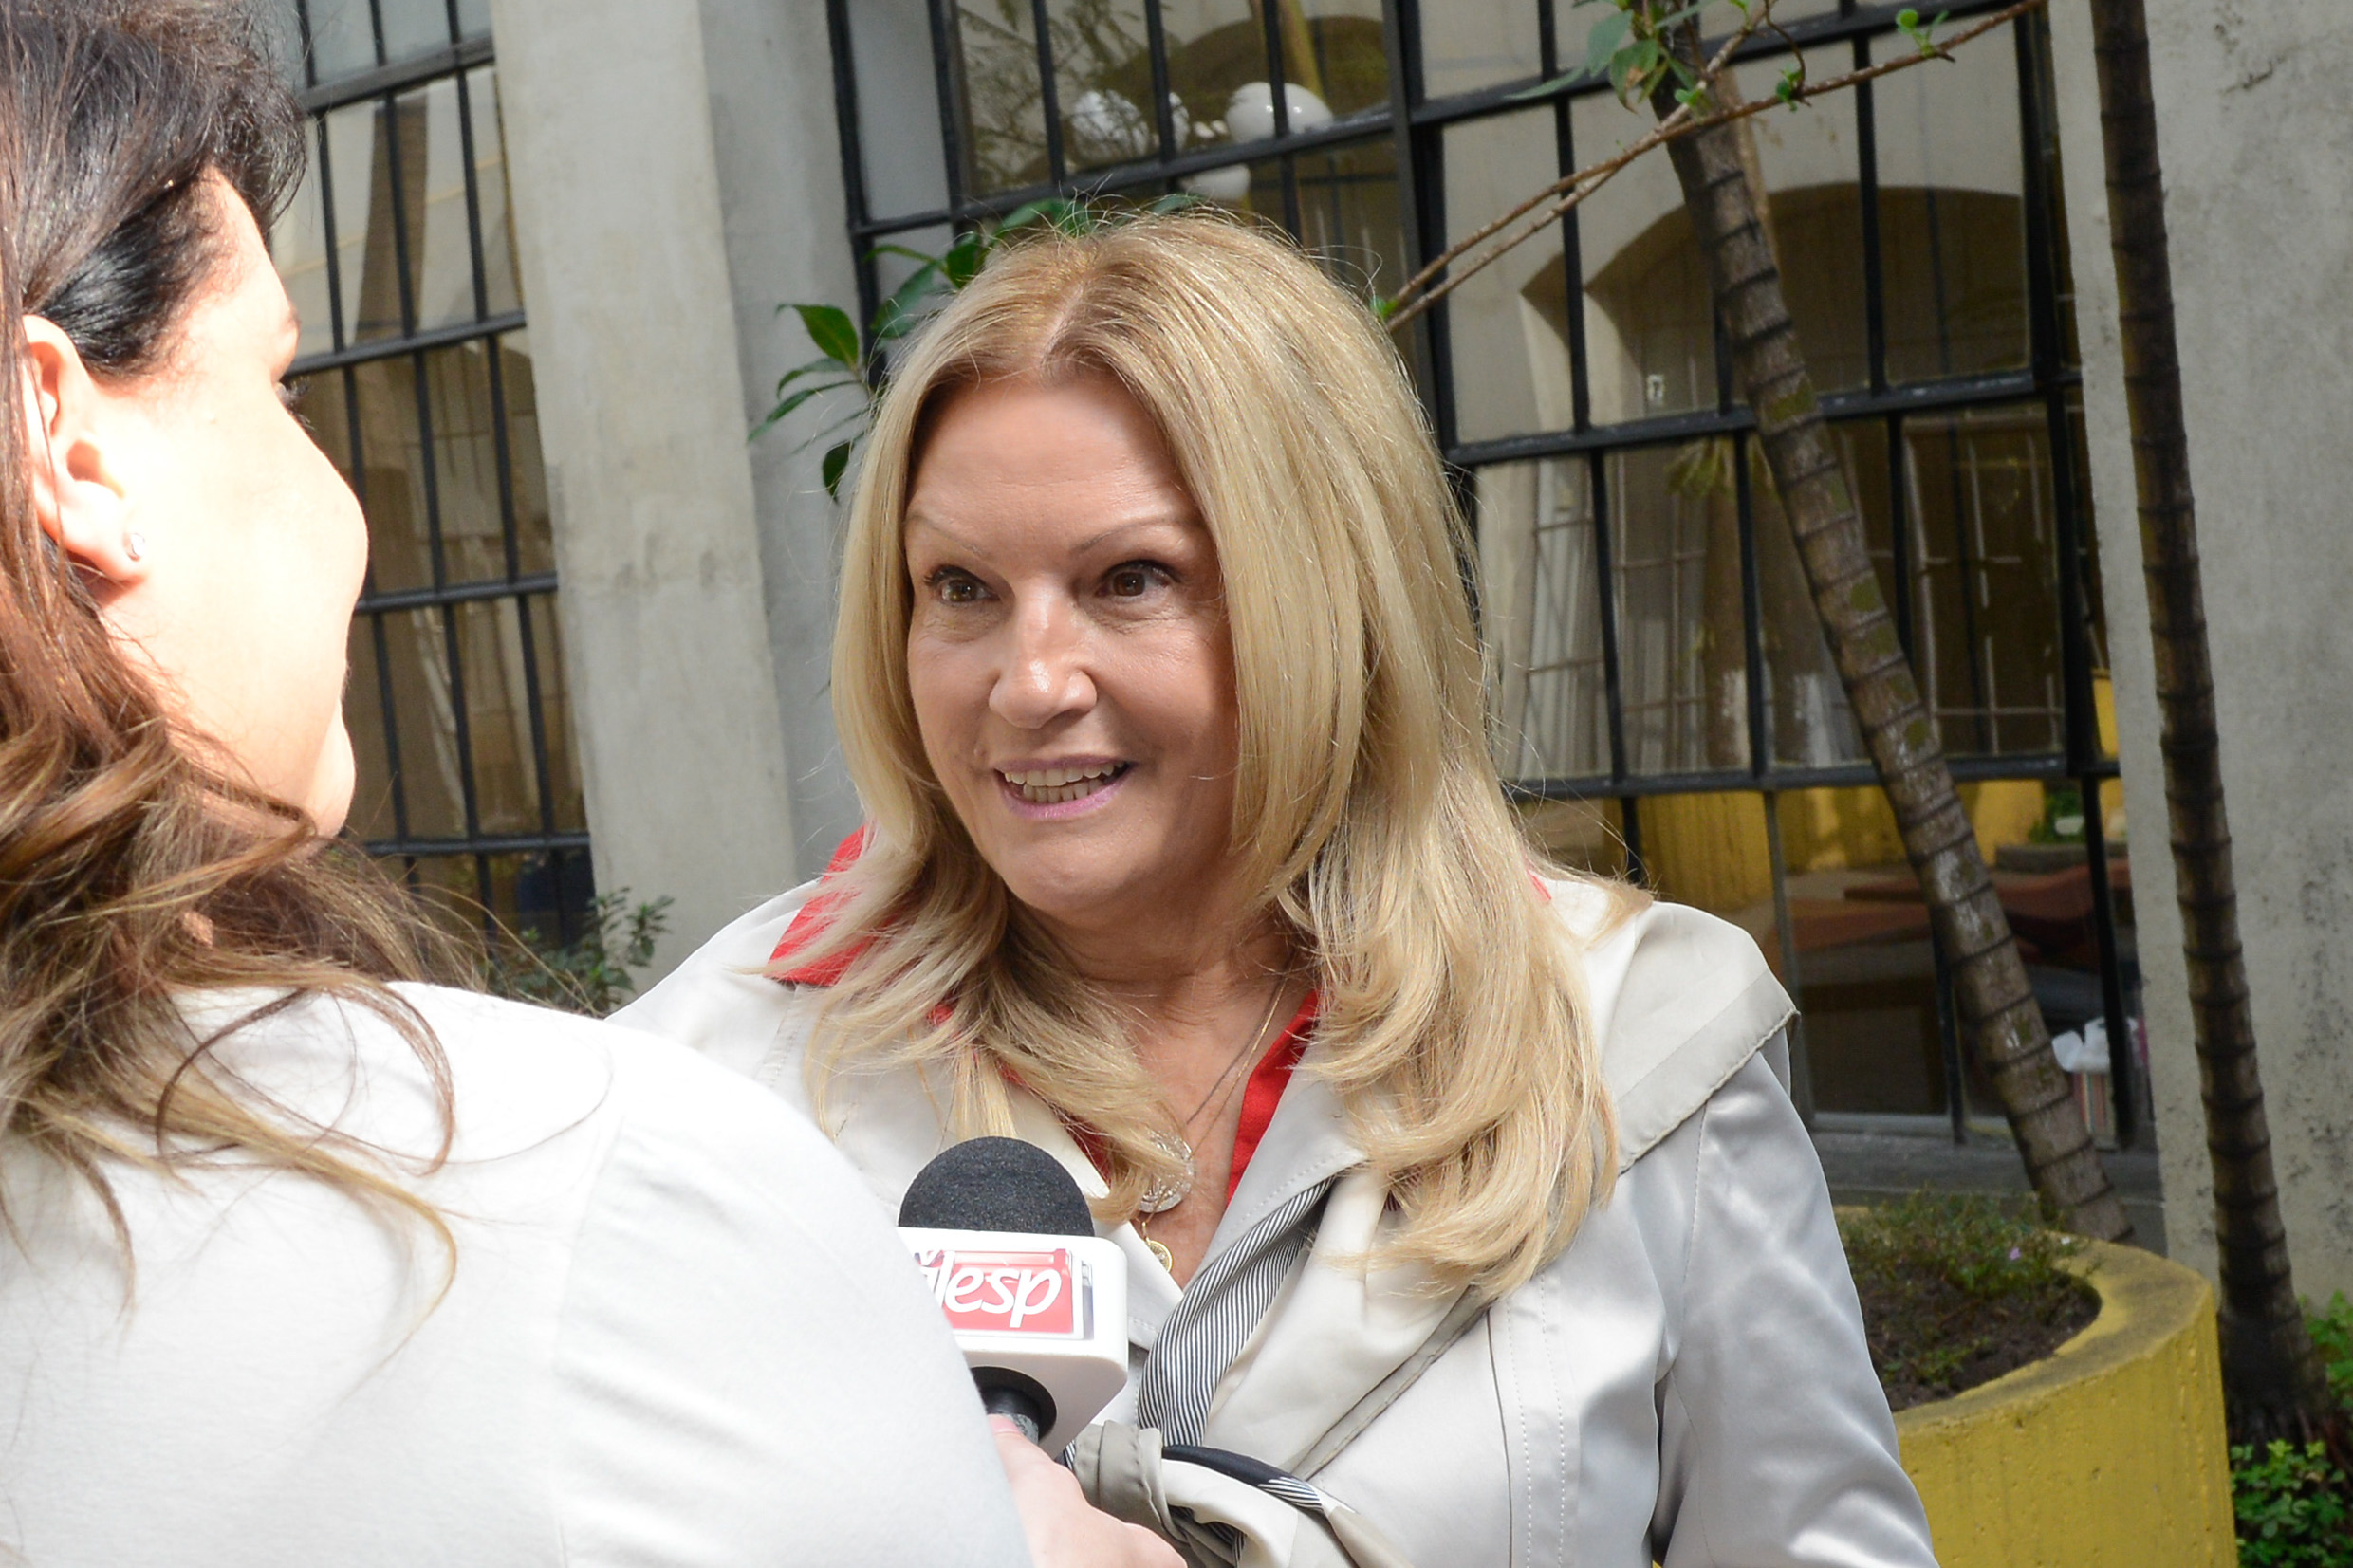 Maria Lucia Amary concede entrevista <a style='float:right' href='https://www3.al.sp.gov.br/repositorio/noticia/N-05-2015/fg170686.jpg' target=_blank><img src='/_img/material-file-download-white.png' width='14px' alt='Clique para baixar a imagem'></a>